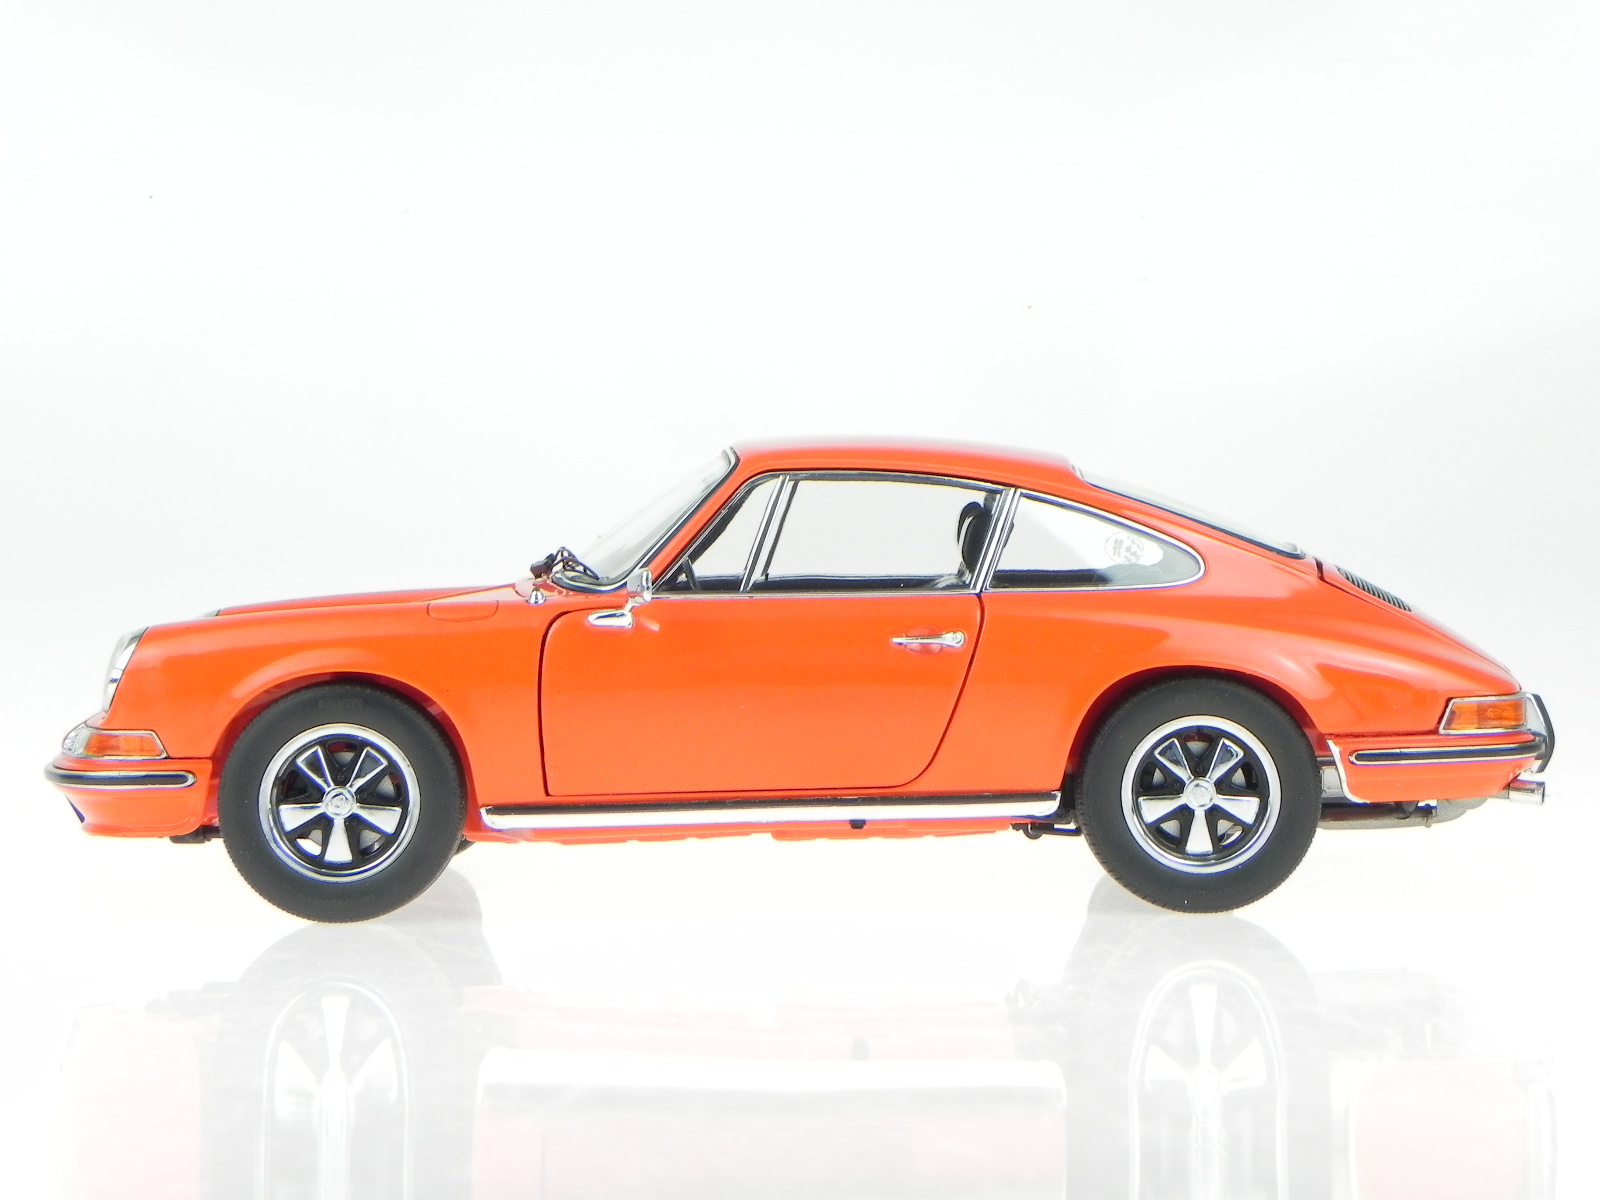 porsche 911 s coupe 1973 orange modellauto 353 schuco 1 18. Black Bedroom Furniture Sets. Home Design Ideas